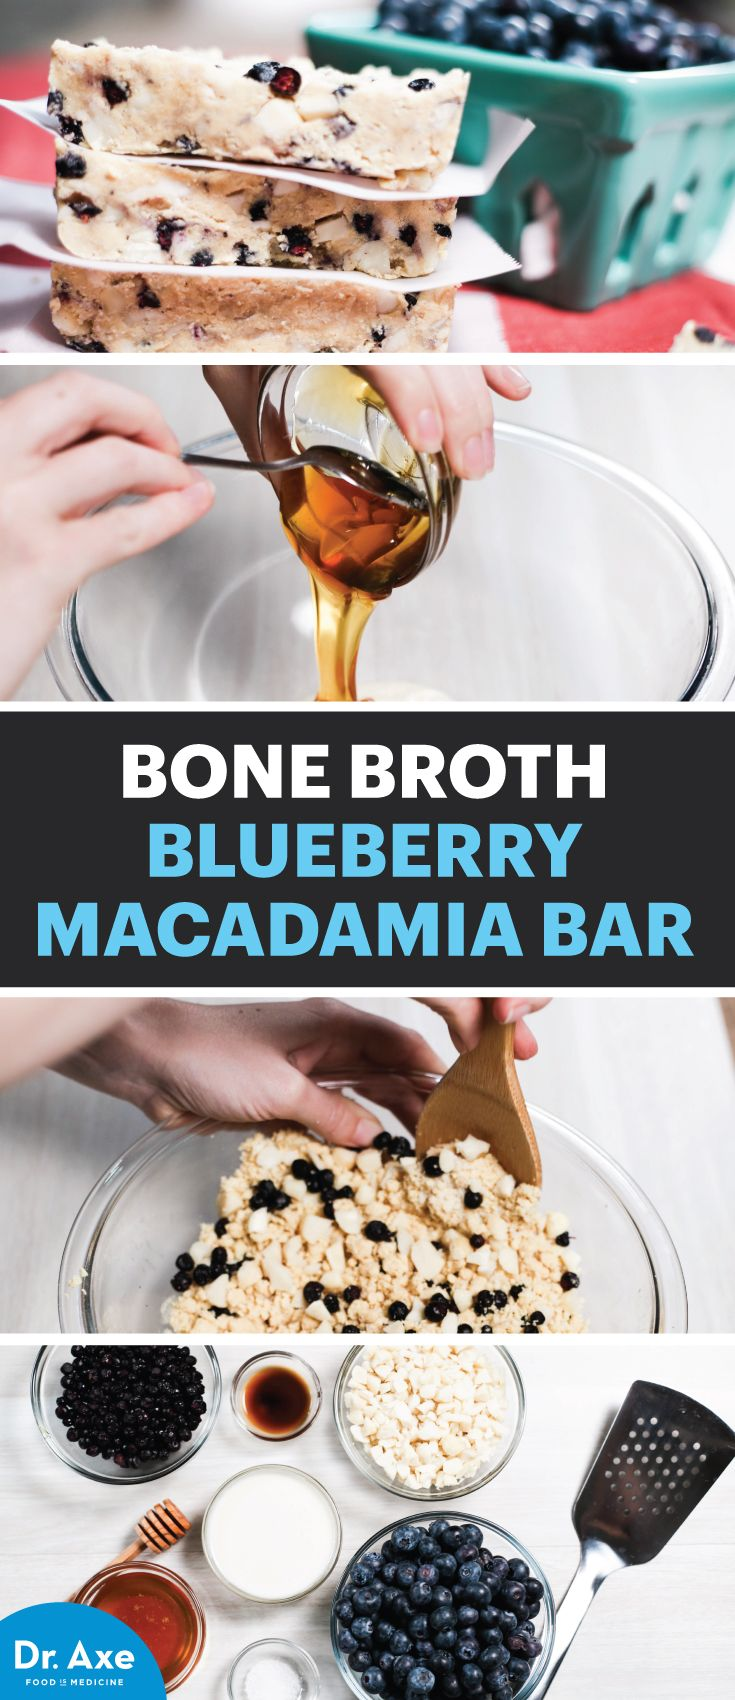 Blueberry Macadamia Bars with Bone Broth Protein